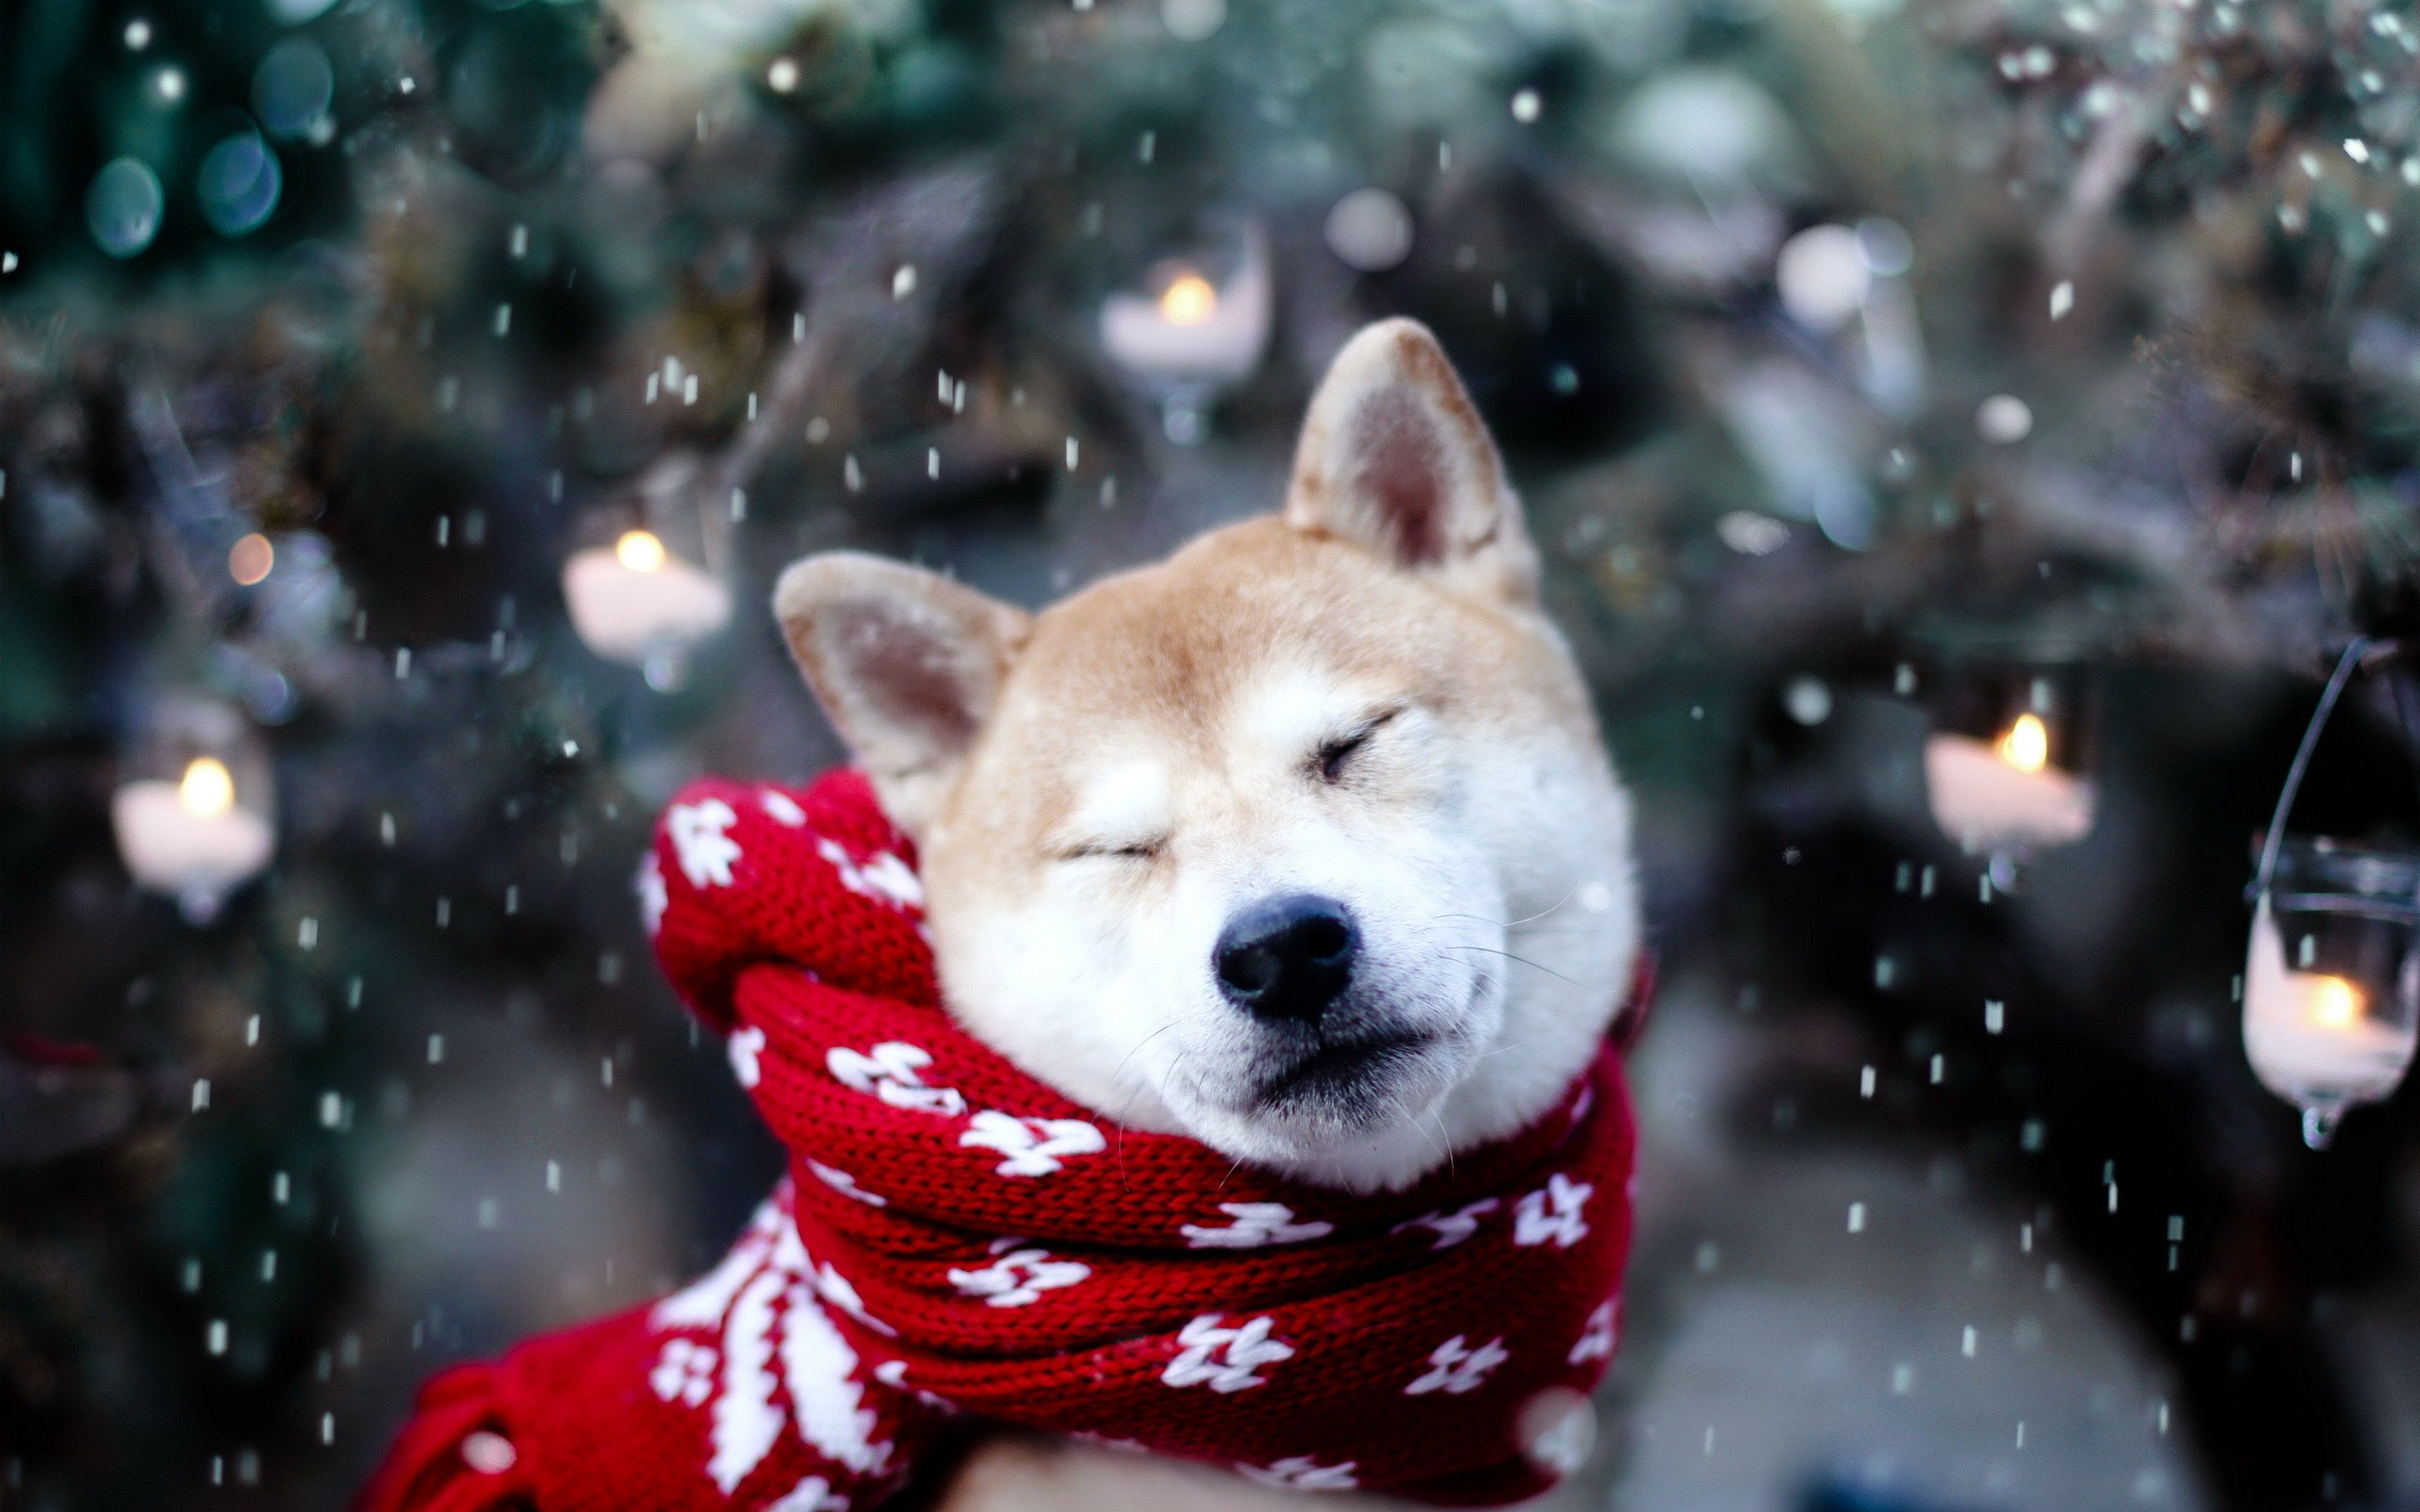 cute-dog-winter-snow-snowflakes-nature-photo-wallpaper-2560x1600